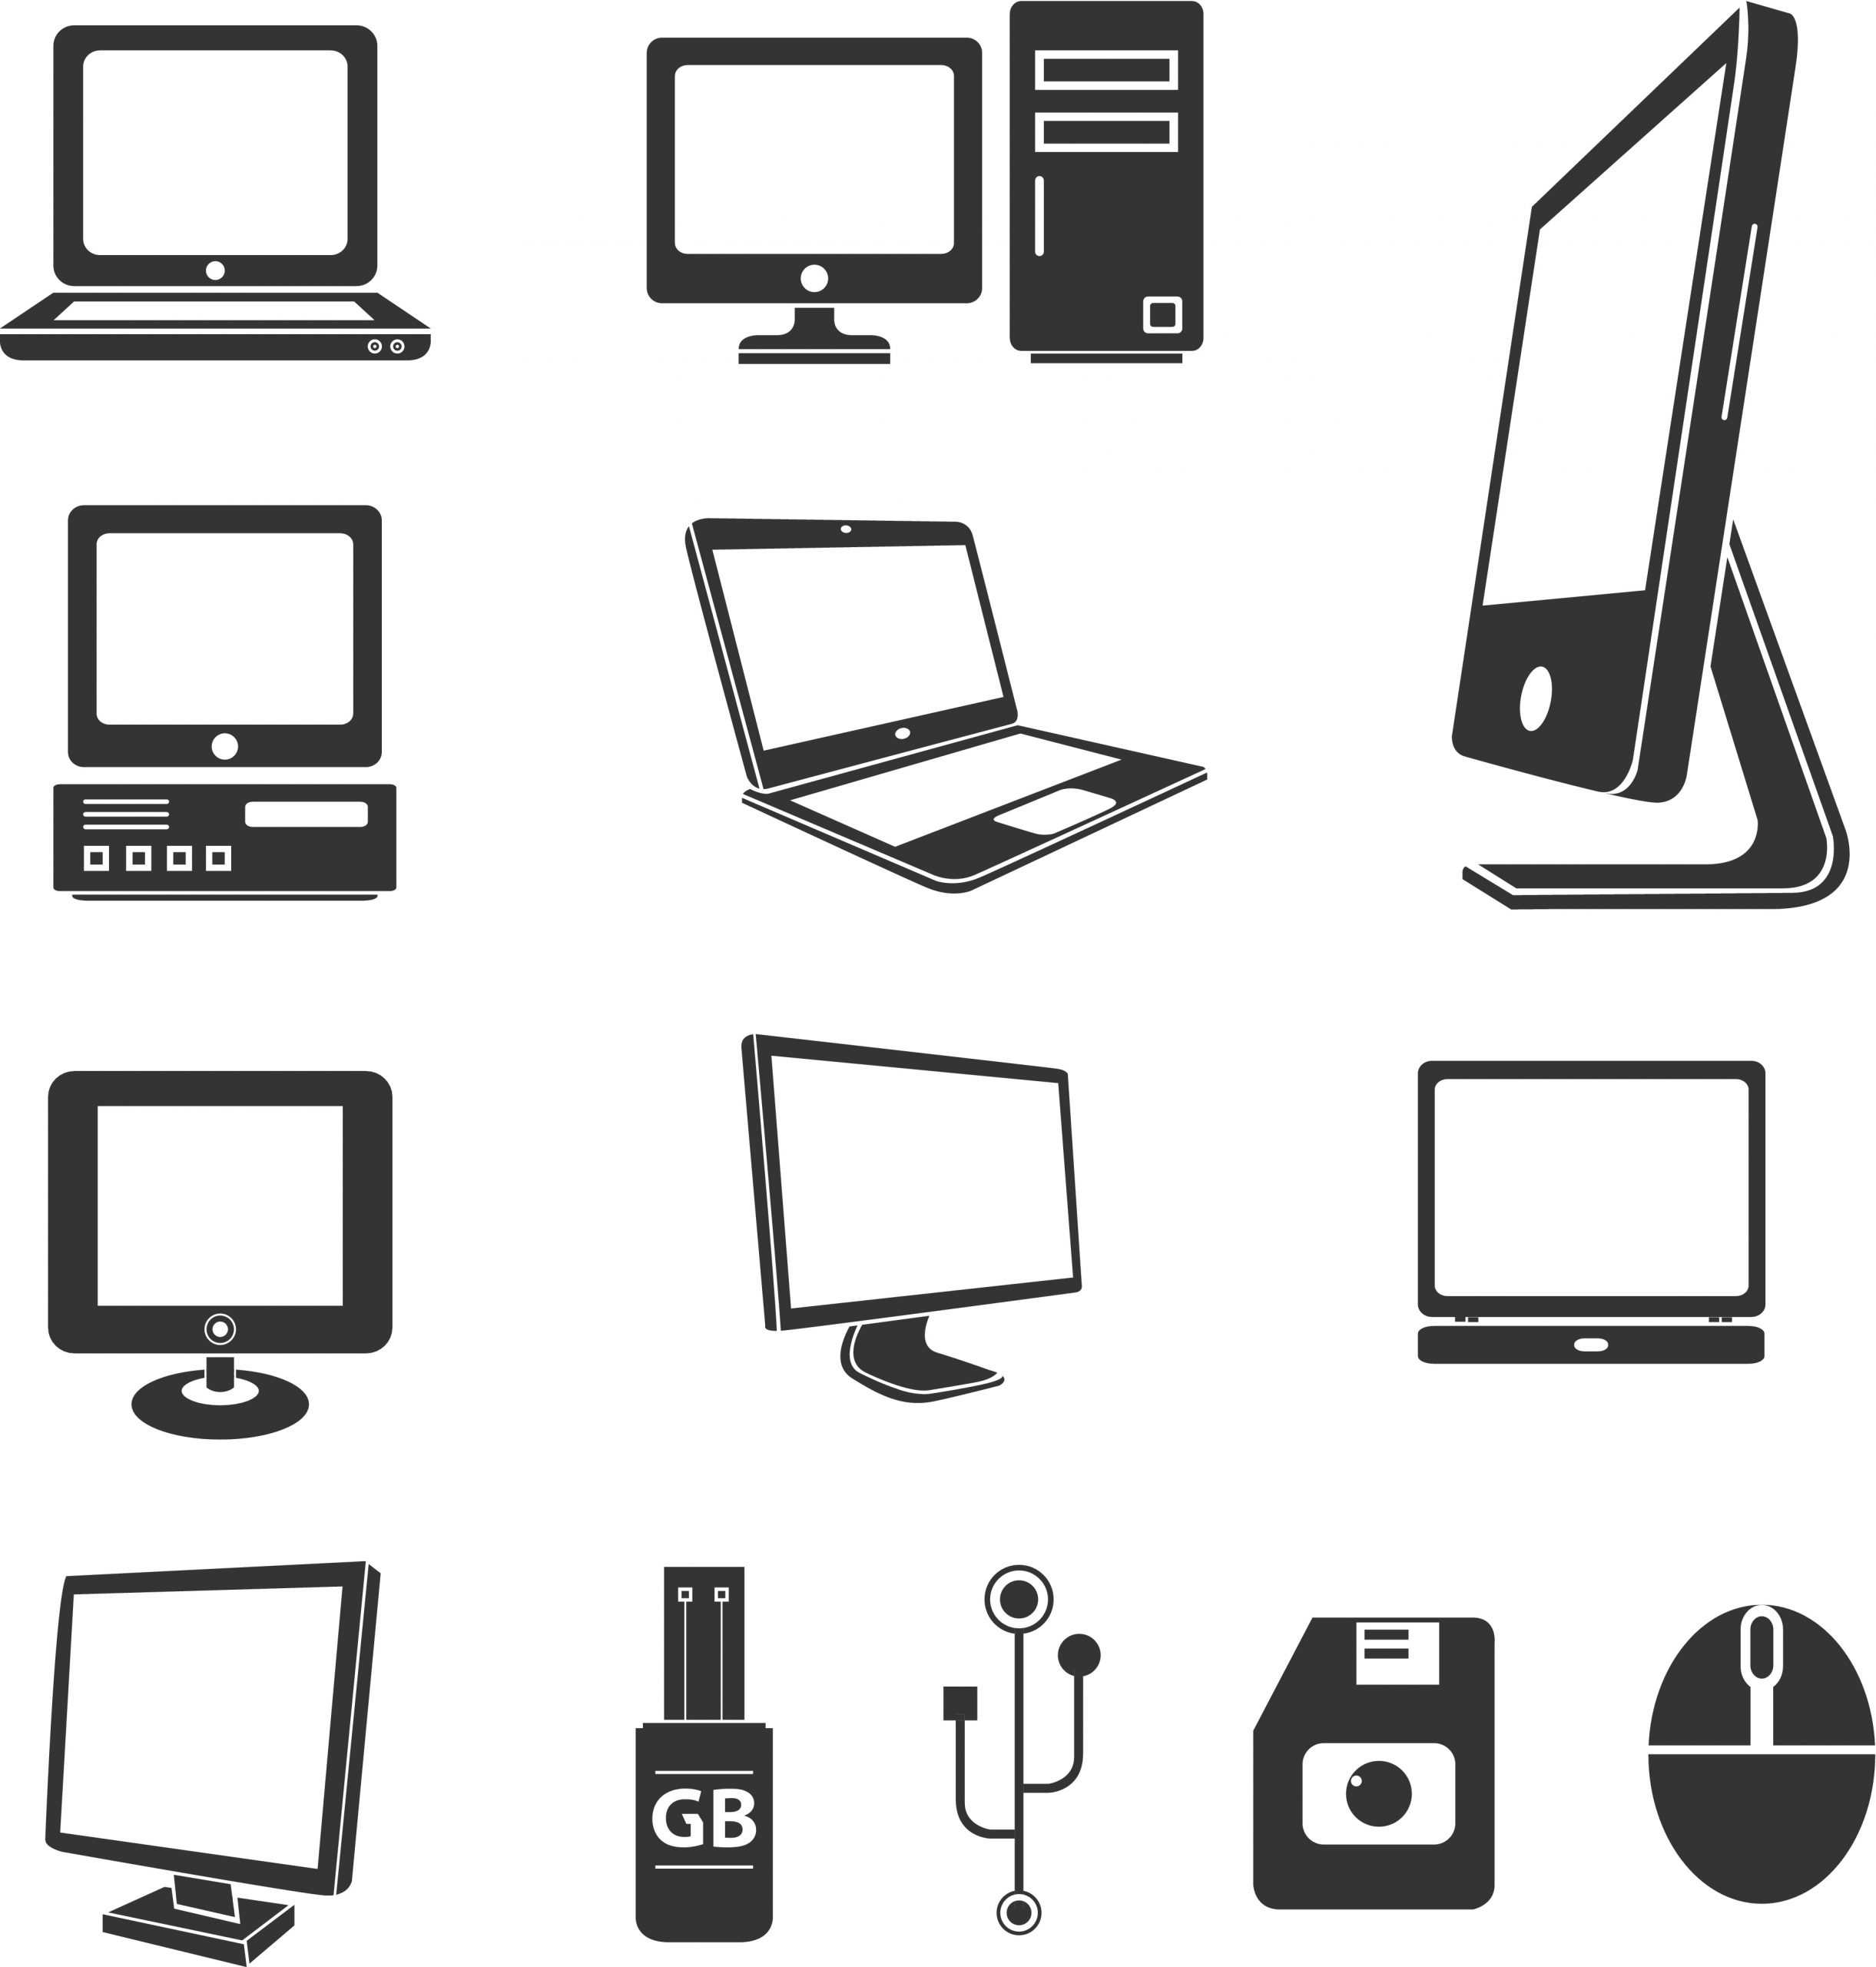 5 Categories Of Computer Types And Components